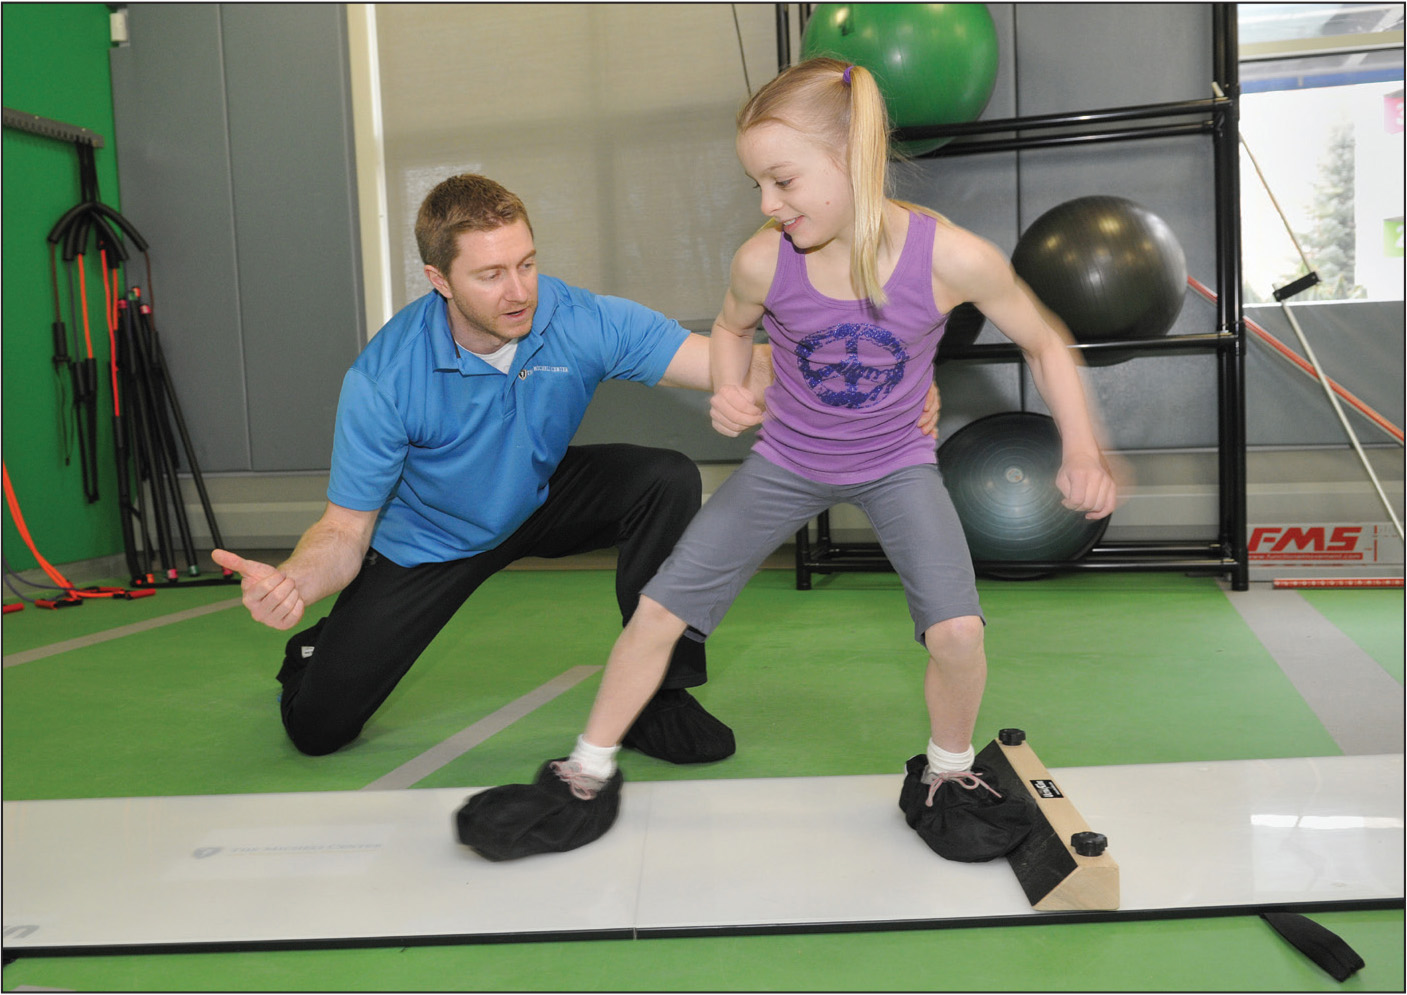 Training targeting improving hip muscle strength by using a slide board. From The Micheli Center for Sports Injury Prevention (Waltham, MA) with consent of both participants.